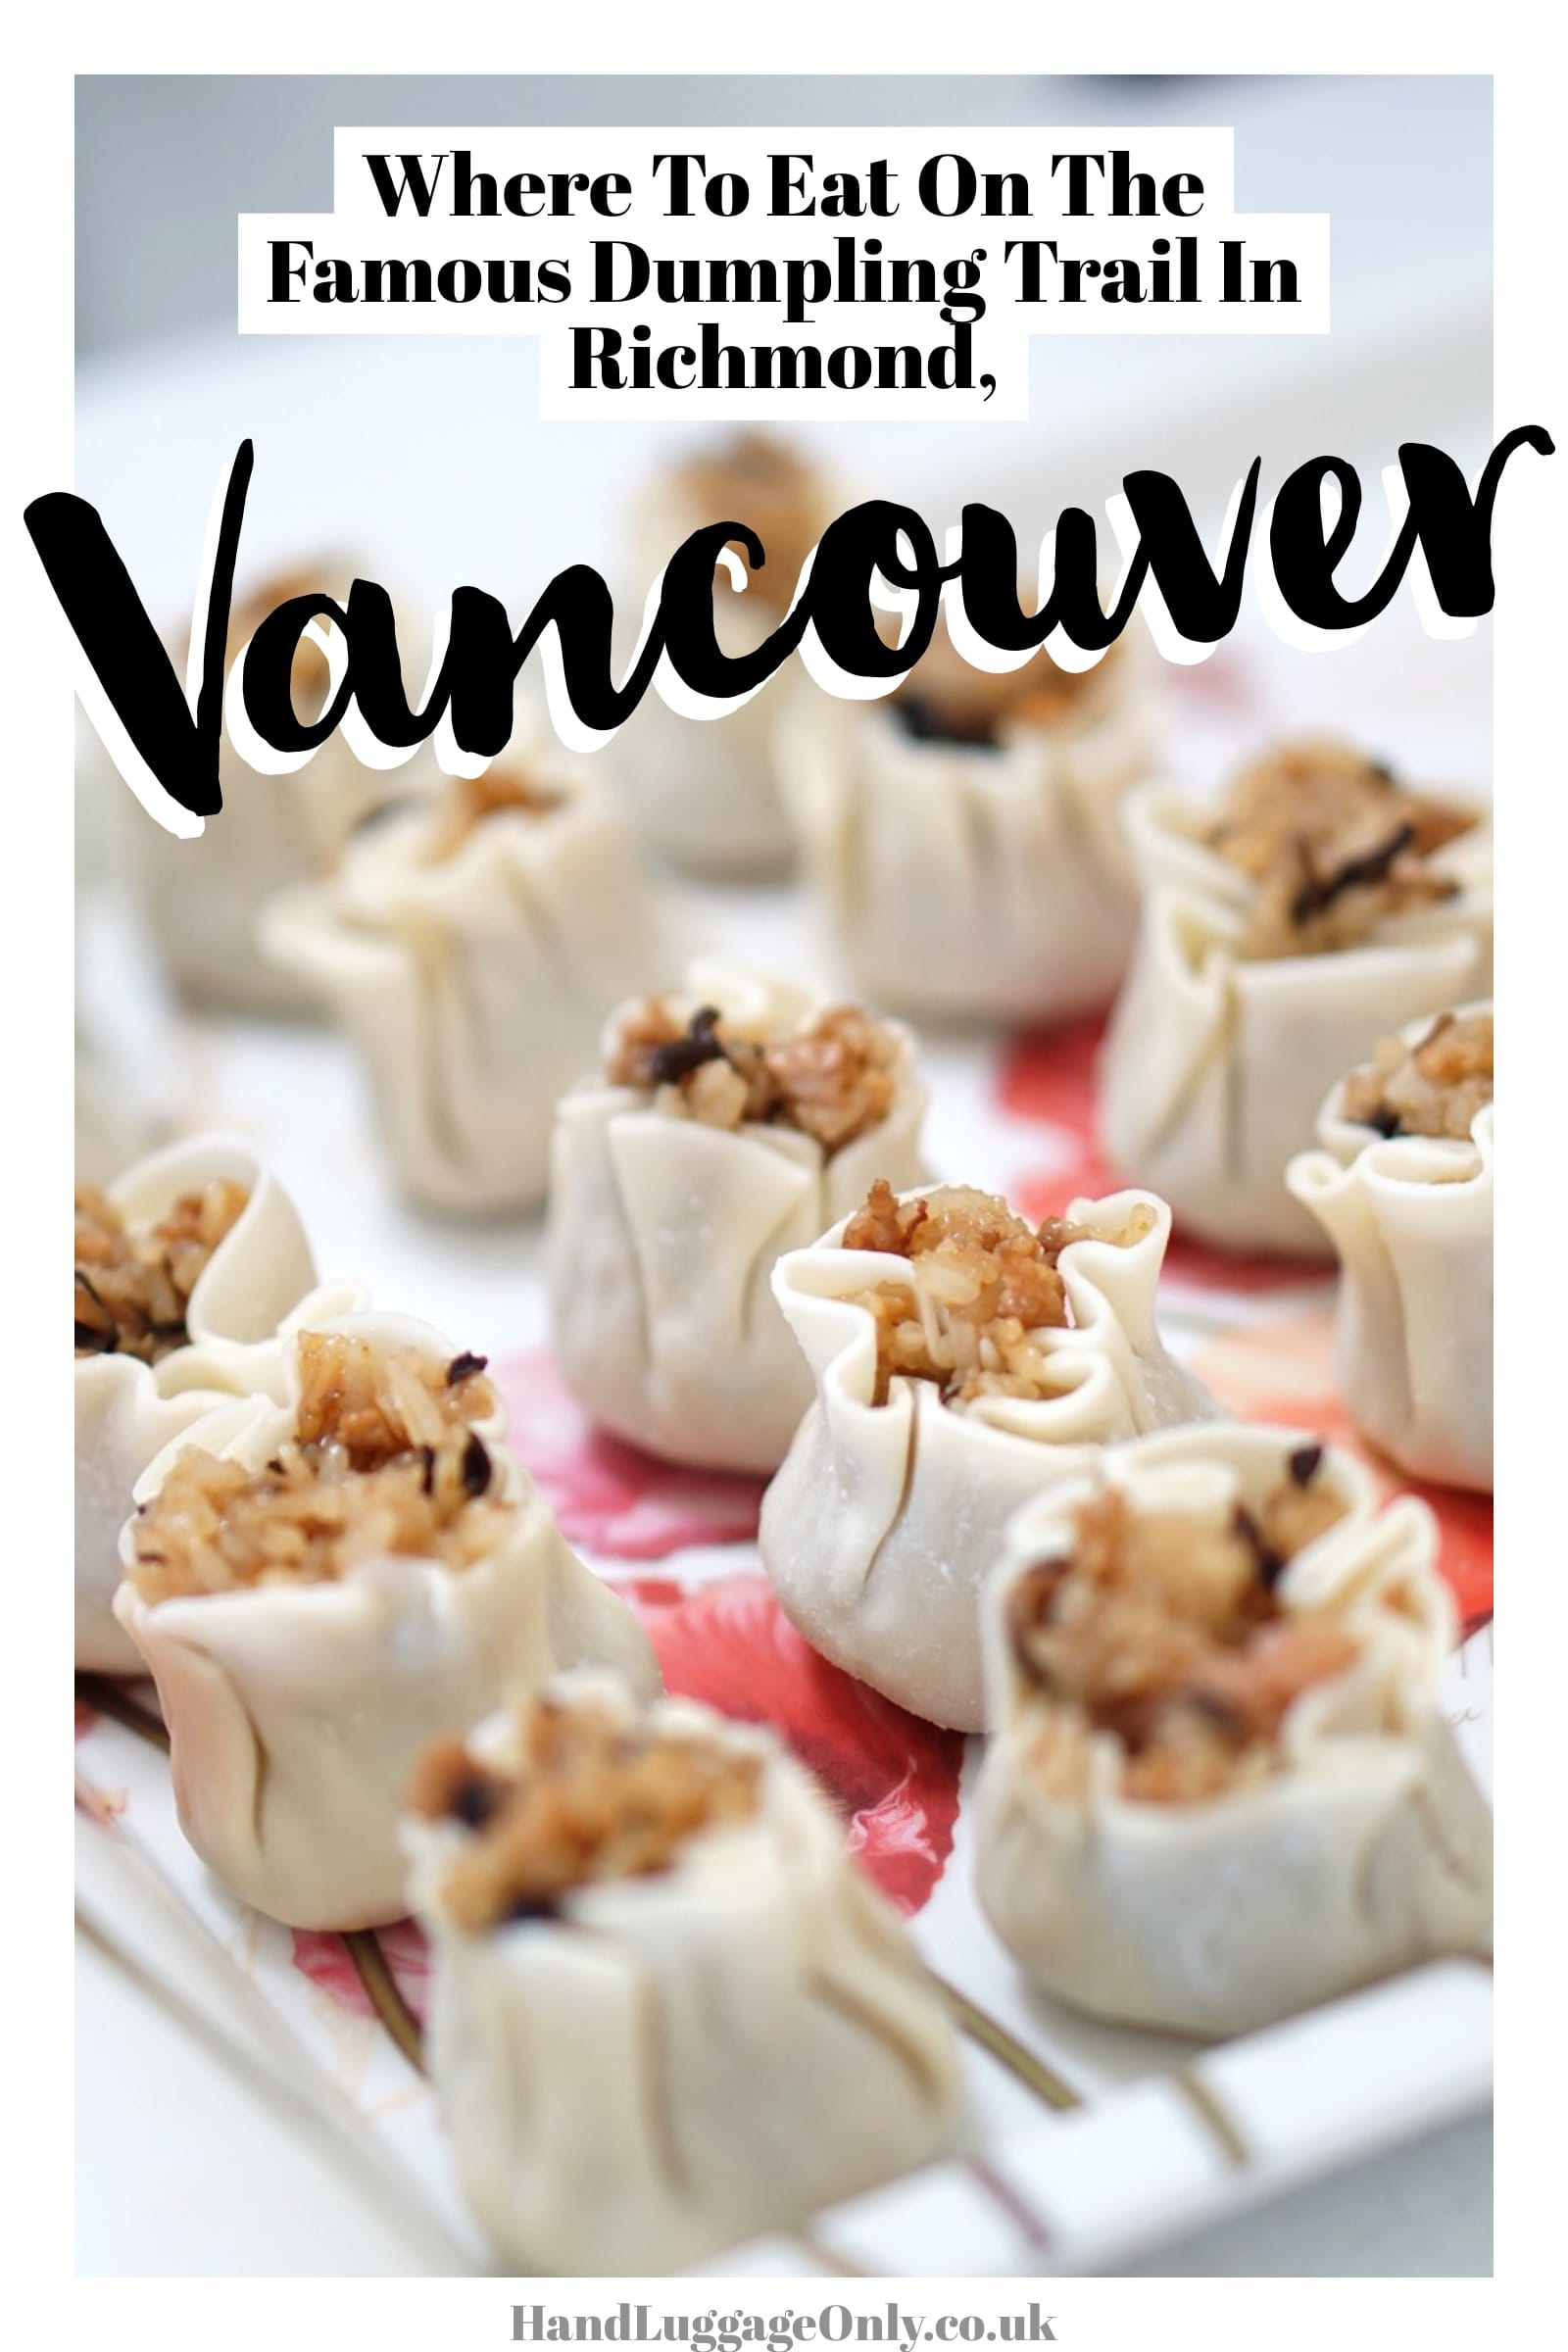 Where To Eat On Richmond's Famous Dumpling Trail, Vancouver - Canada (8)